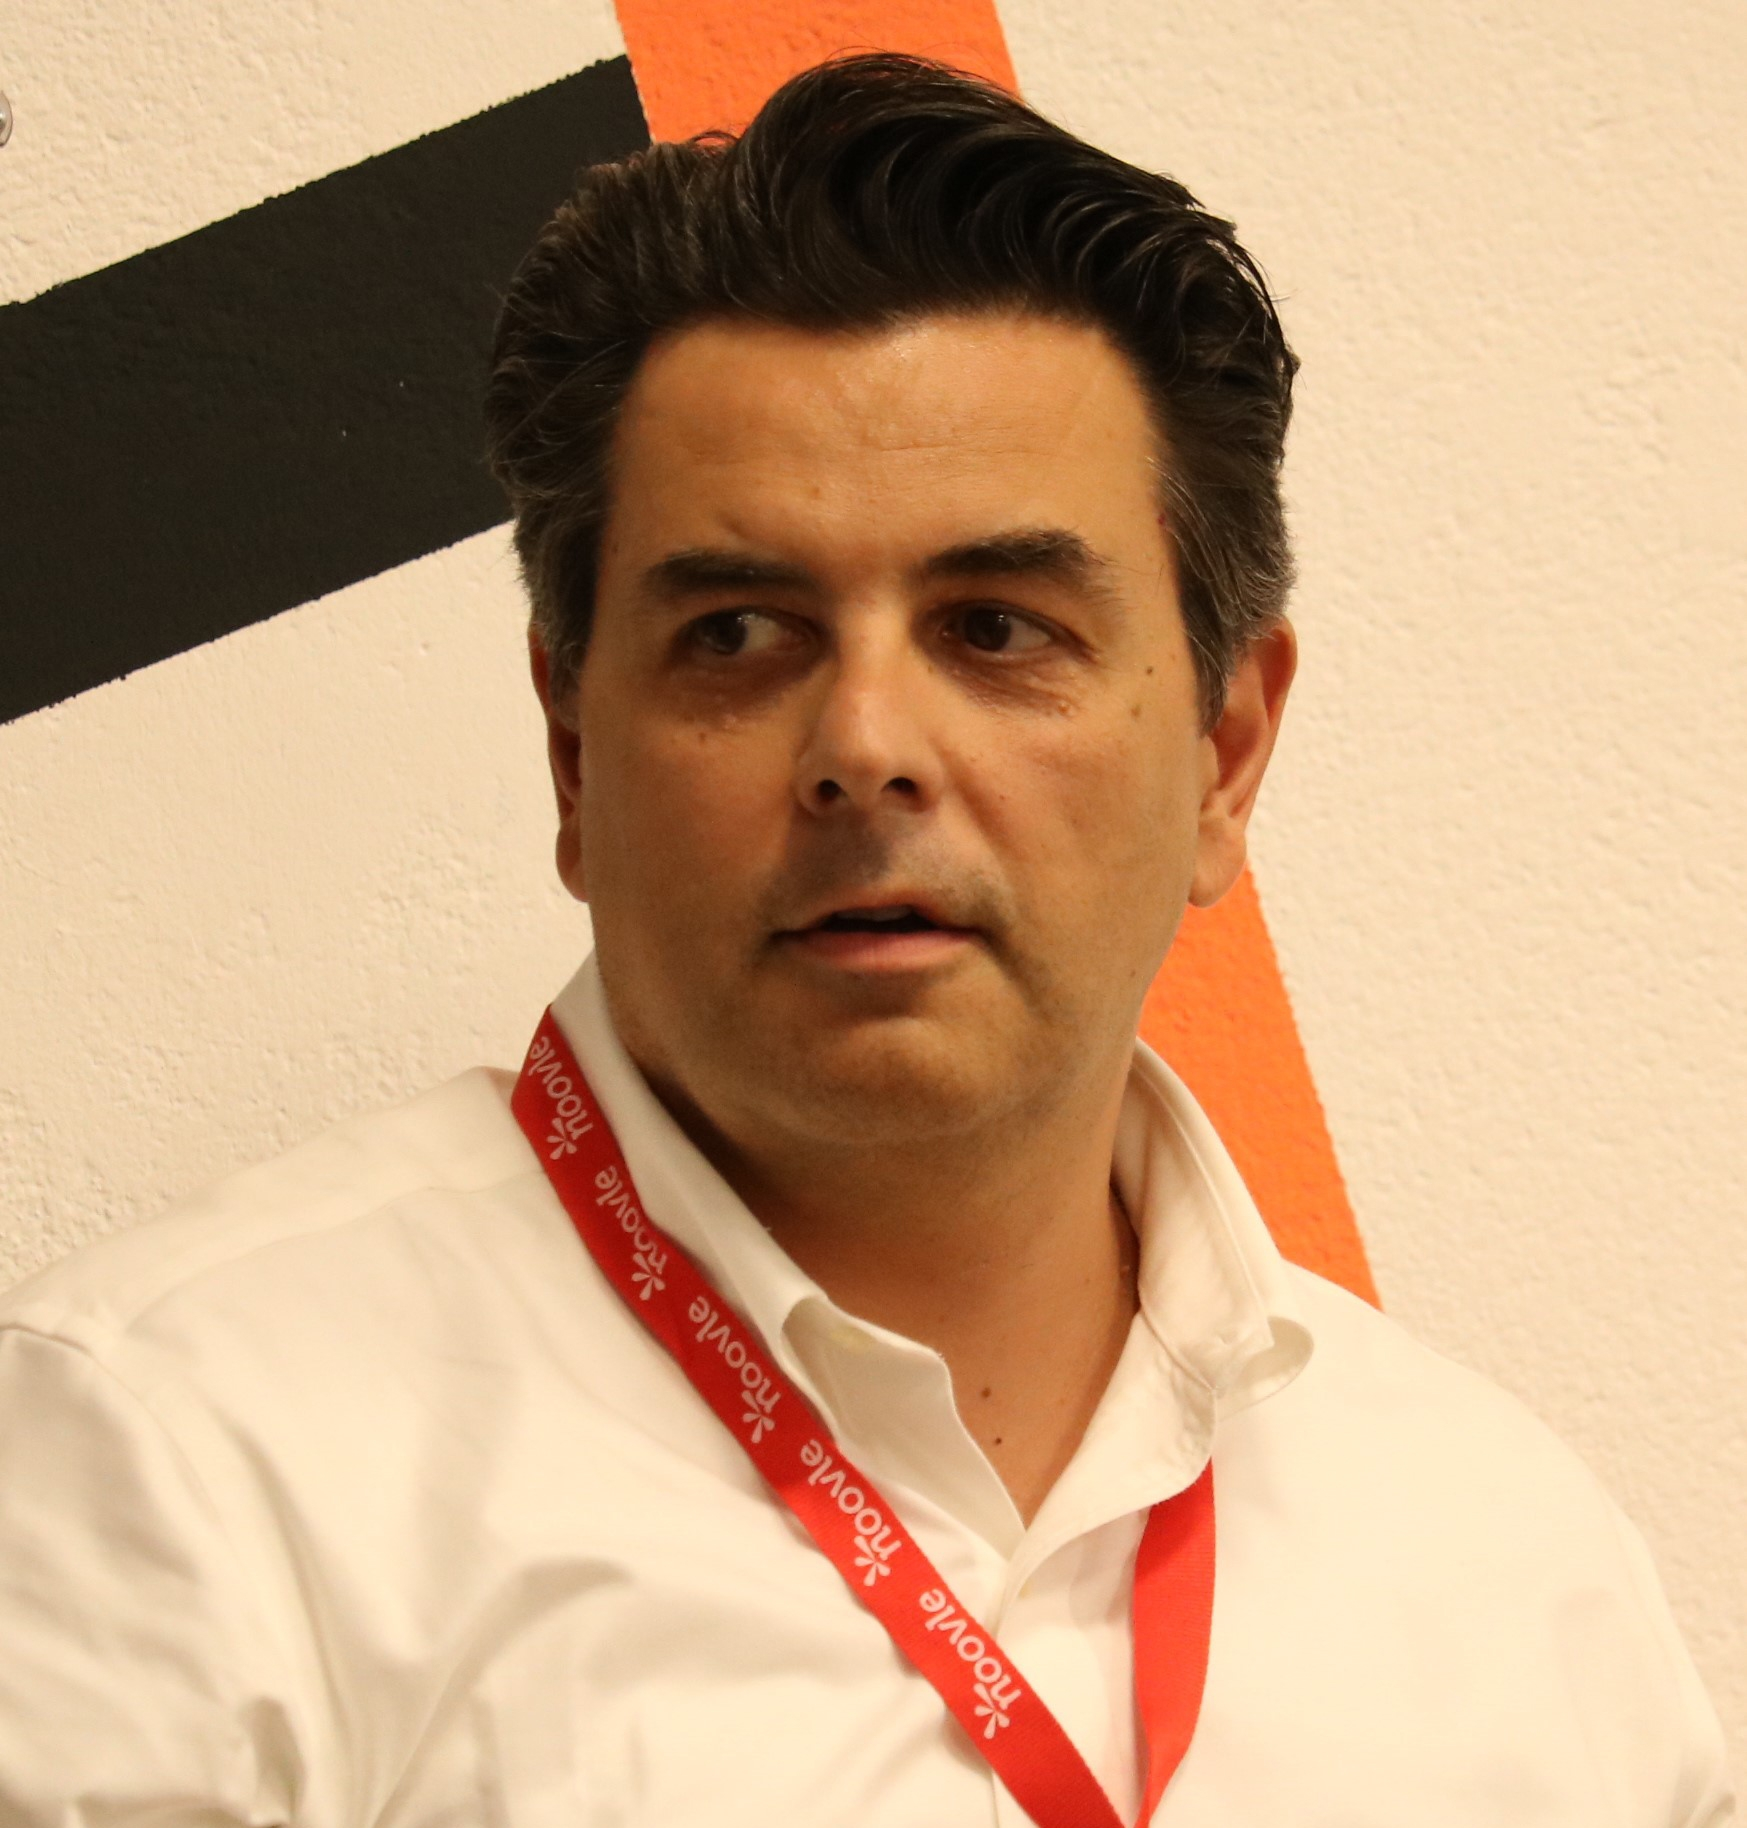 Carlo Torniai, Head of Data Science and Analytics in Pirelli